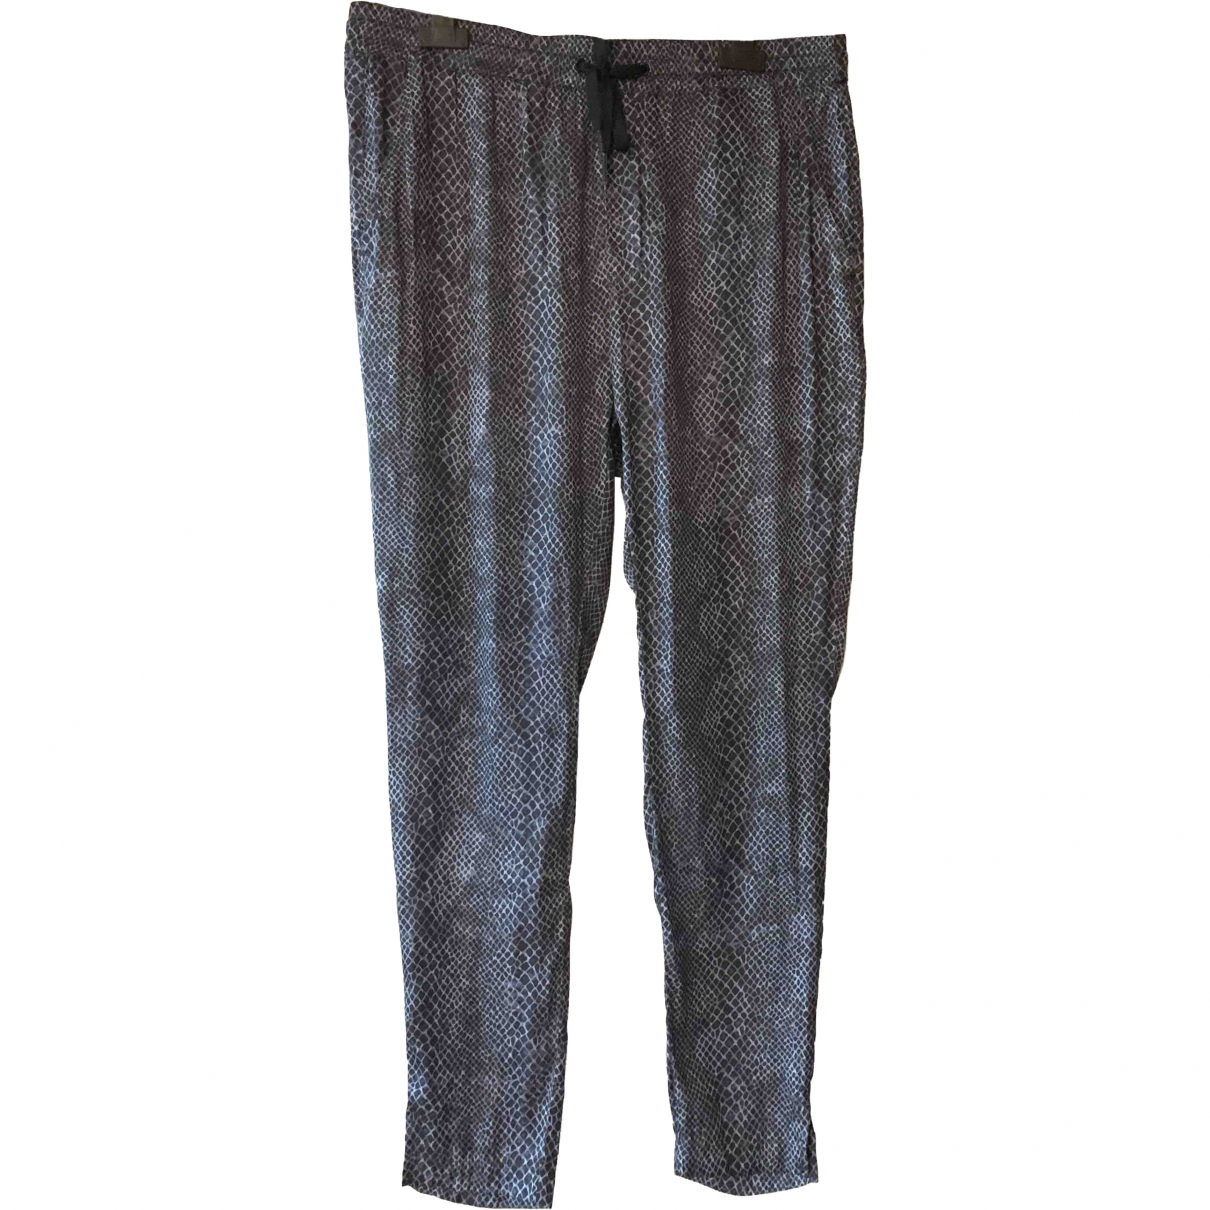 Replay \N Blue Trousers for Women XS International